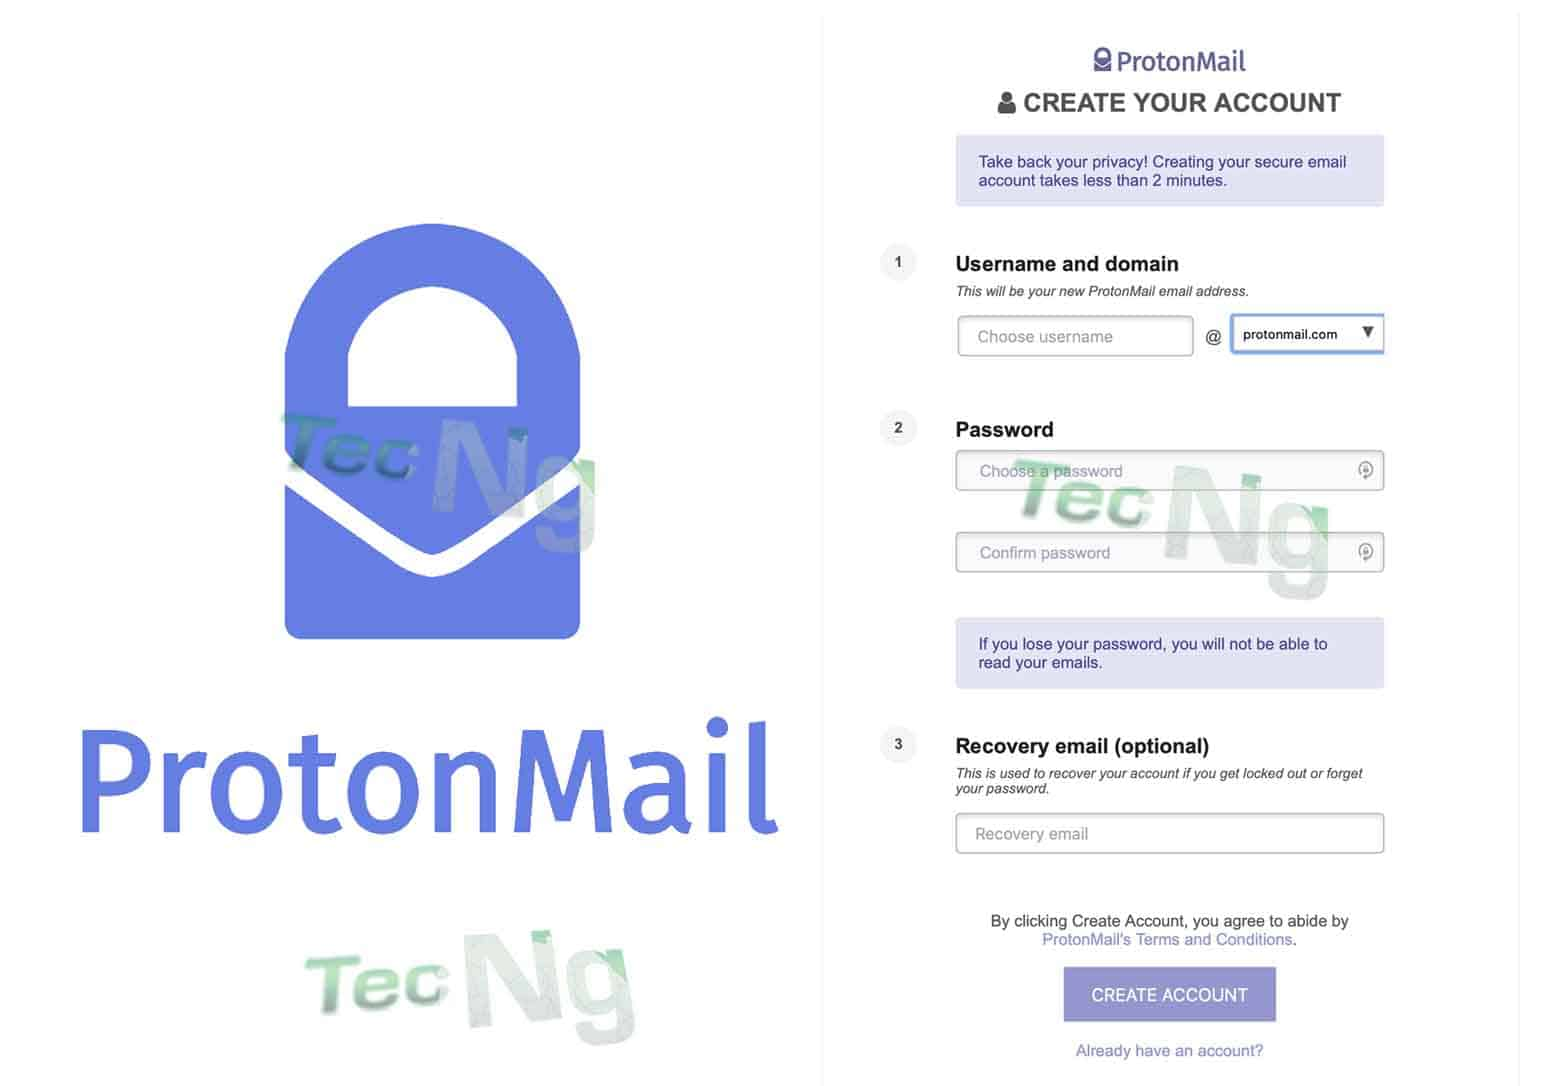 Proton Mail Sign Up - How do I get a proton Email Account | Protonmail.com